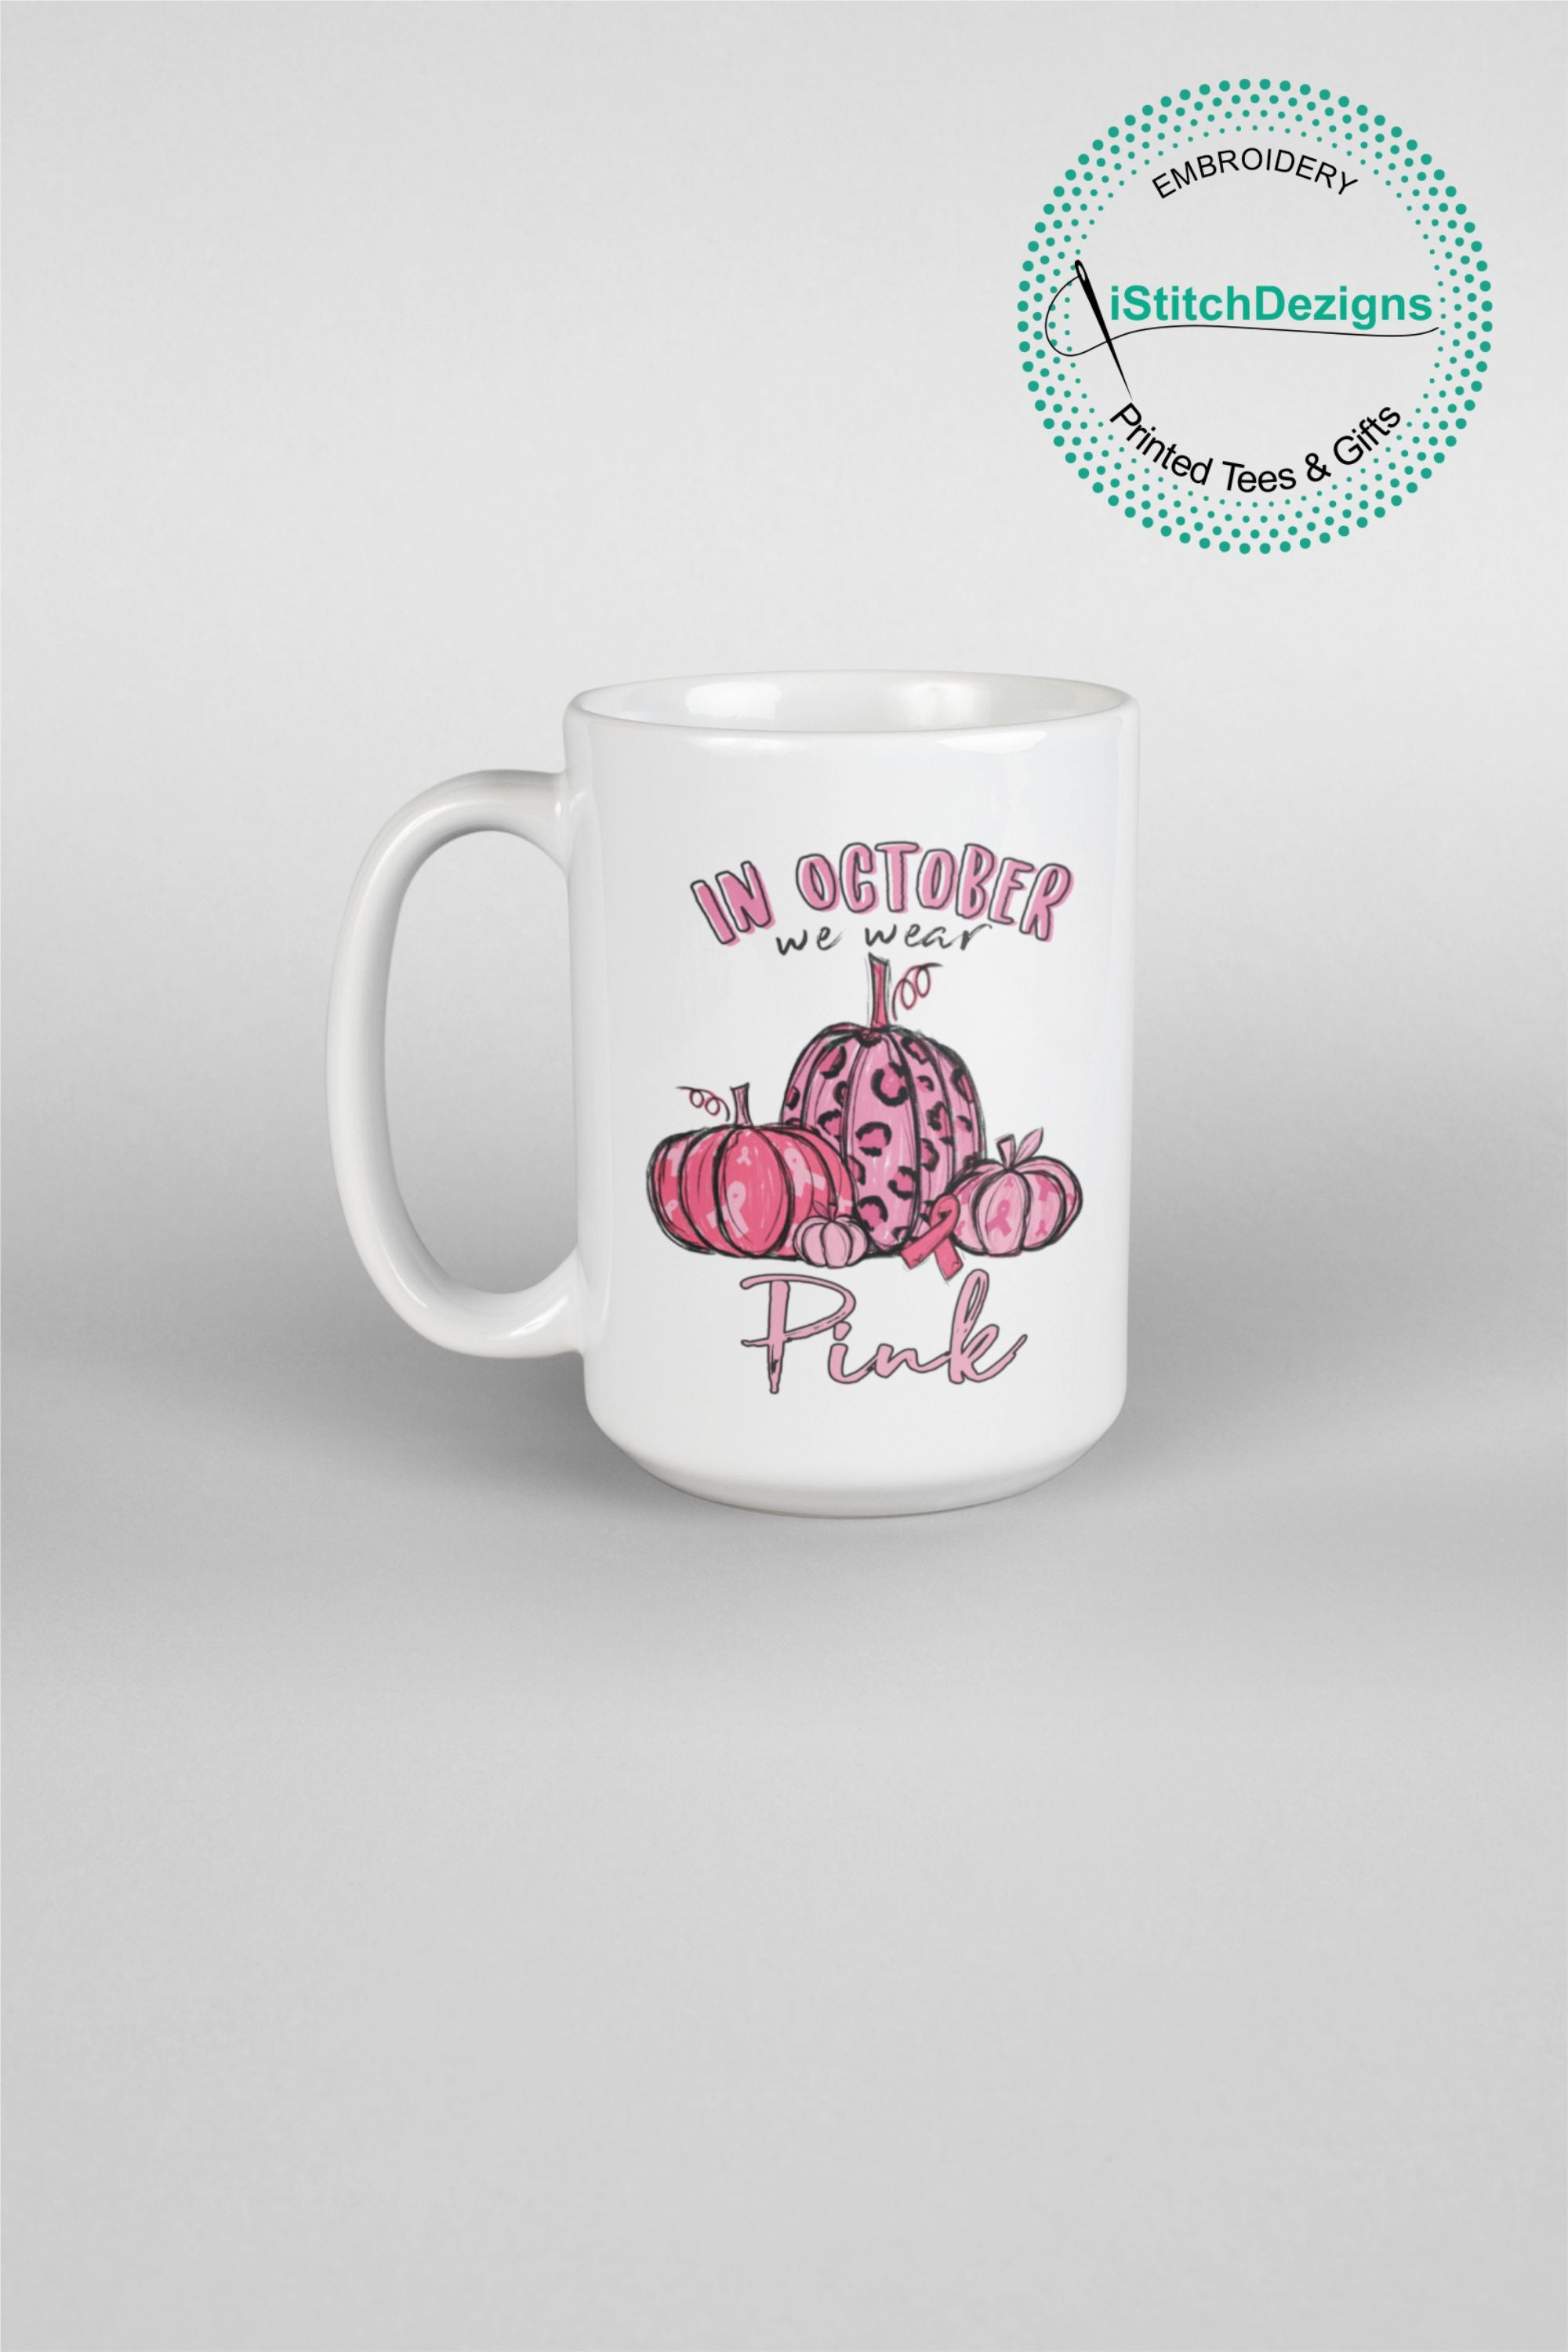 In OCTOBER We Wear Pink Breast Cancer Awareness Mugs